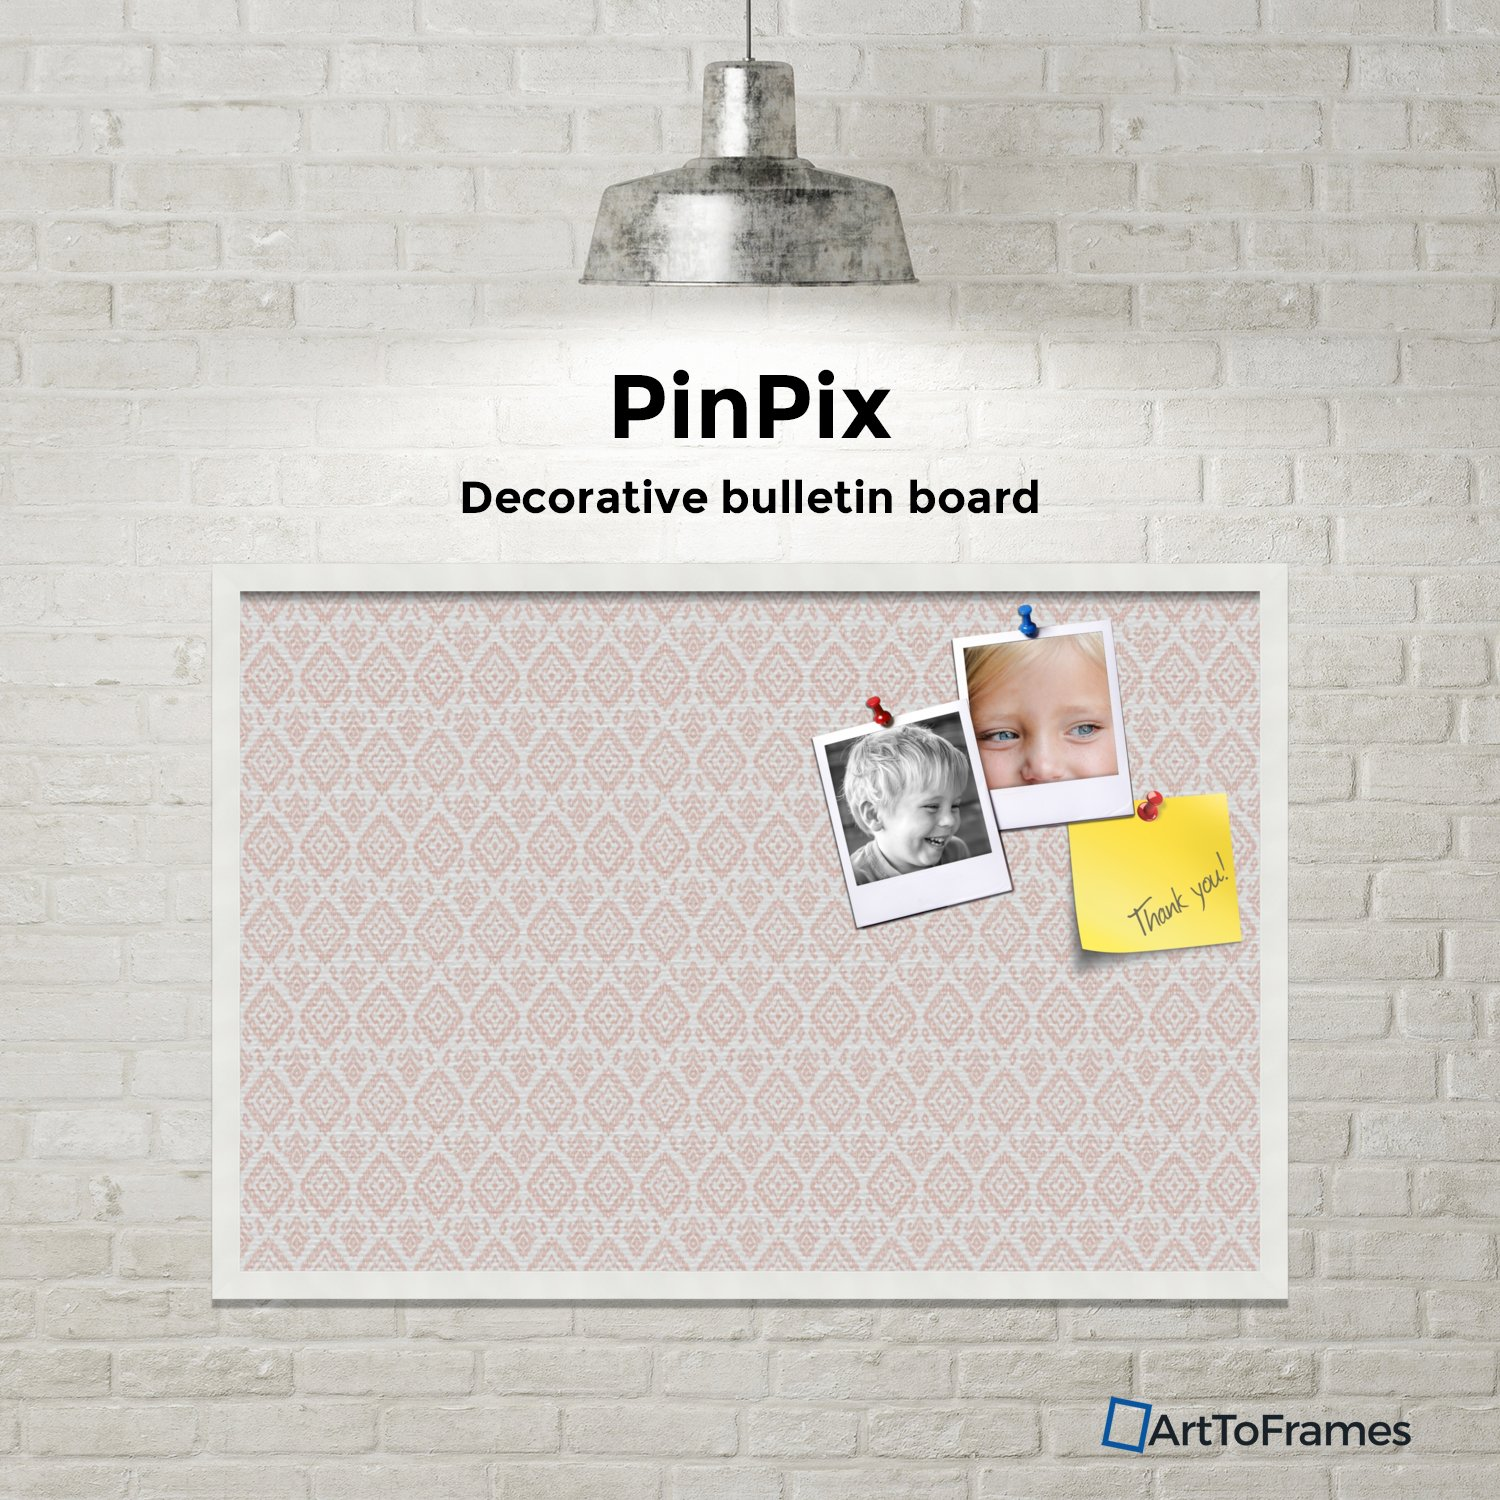 PinPix custom printed pin cork bulletin board made from canvas, Ikat Vintage Grapefruit 36x24 Inches 2 x 3 ft and framed in Satin White Frame (PinPix-1600-36x24_FRBW26074) by PinPix (Image #4)